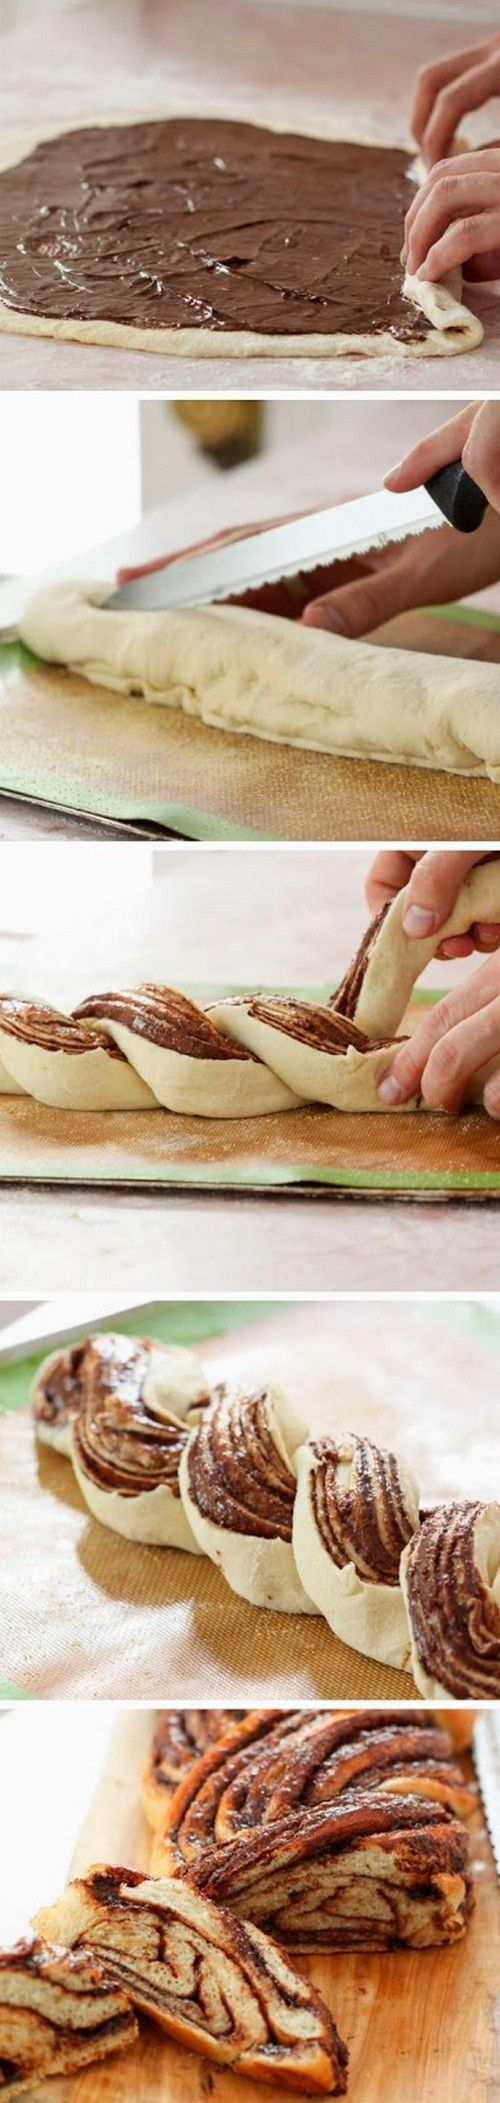 Braided Nutella Bread Recipe